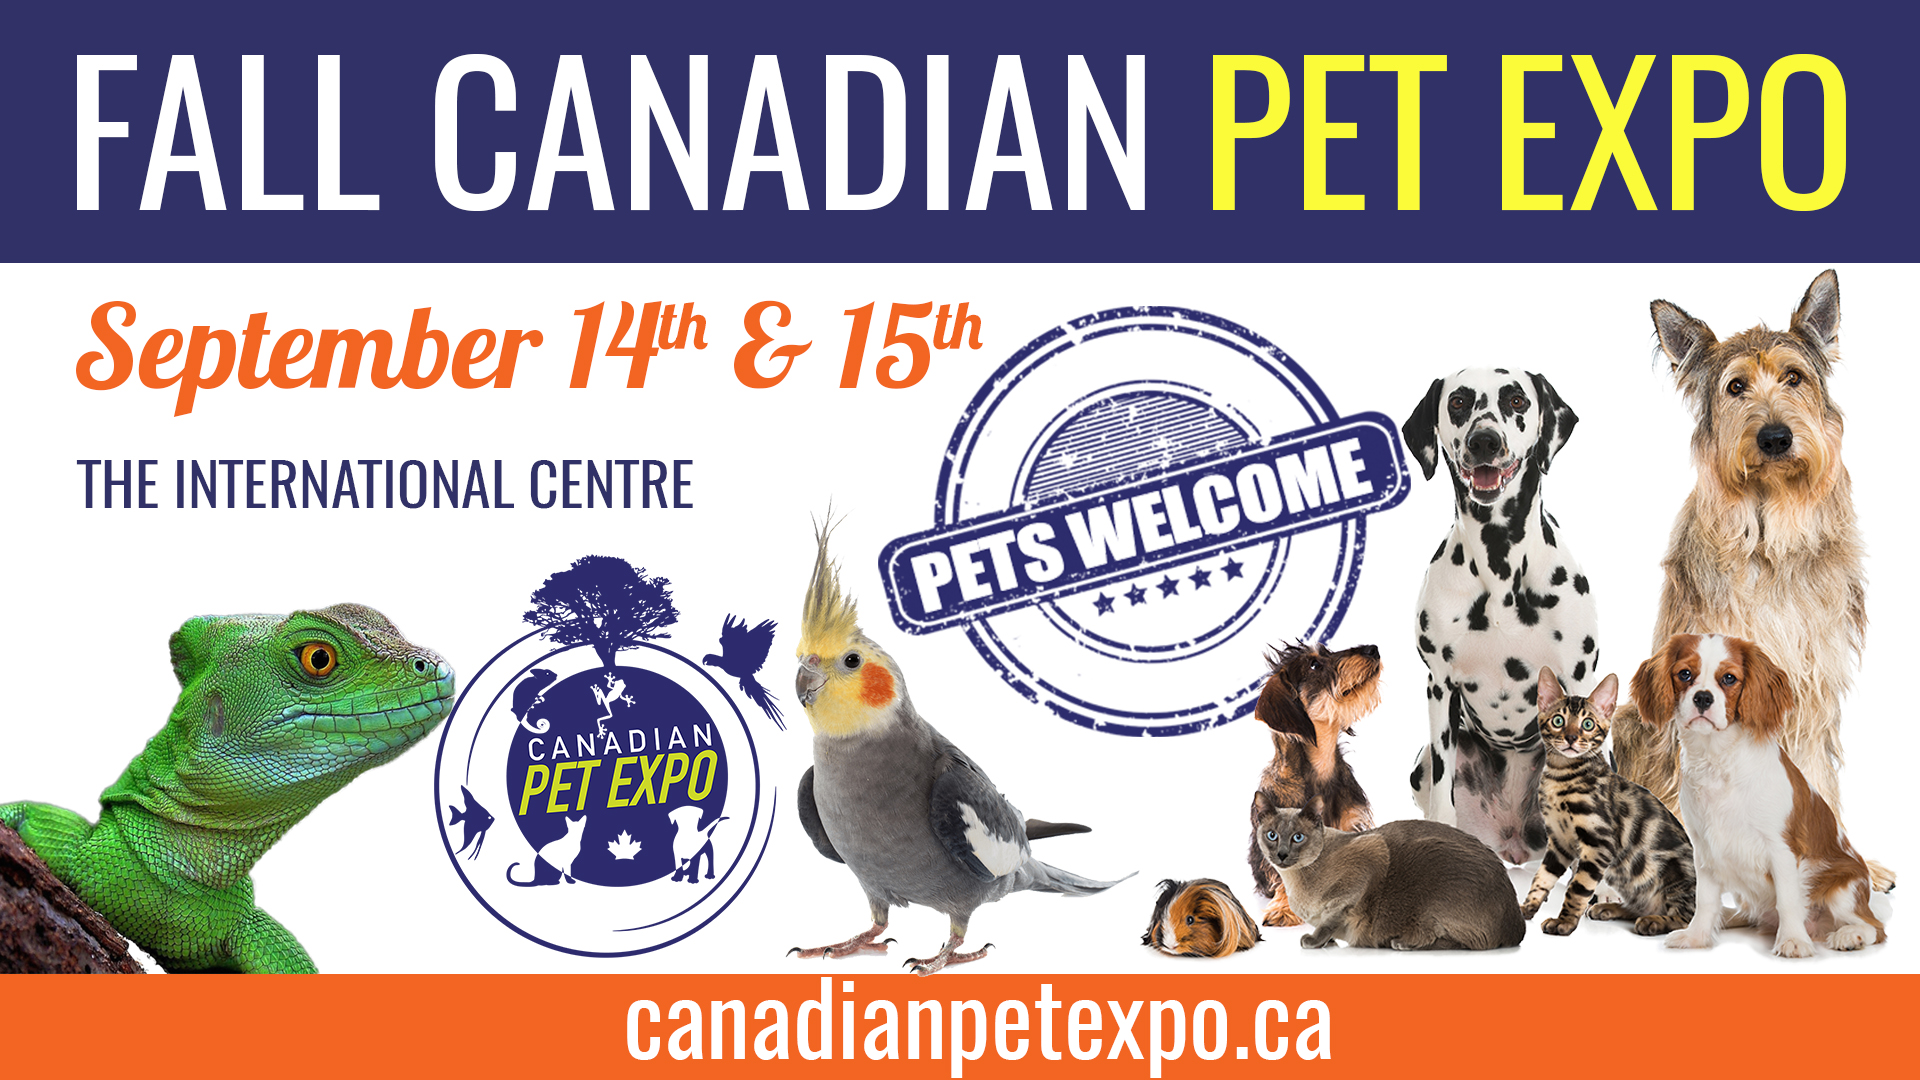 Fall Canadian Pet Expo and Canadian Reptile Breeder's Expo